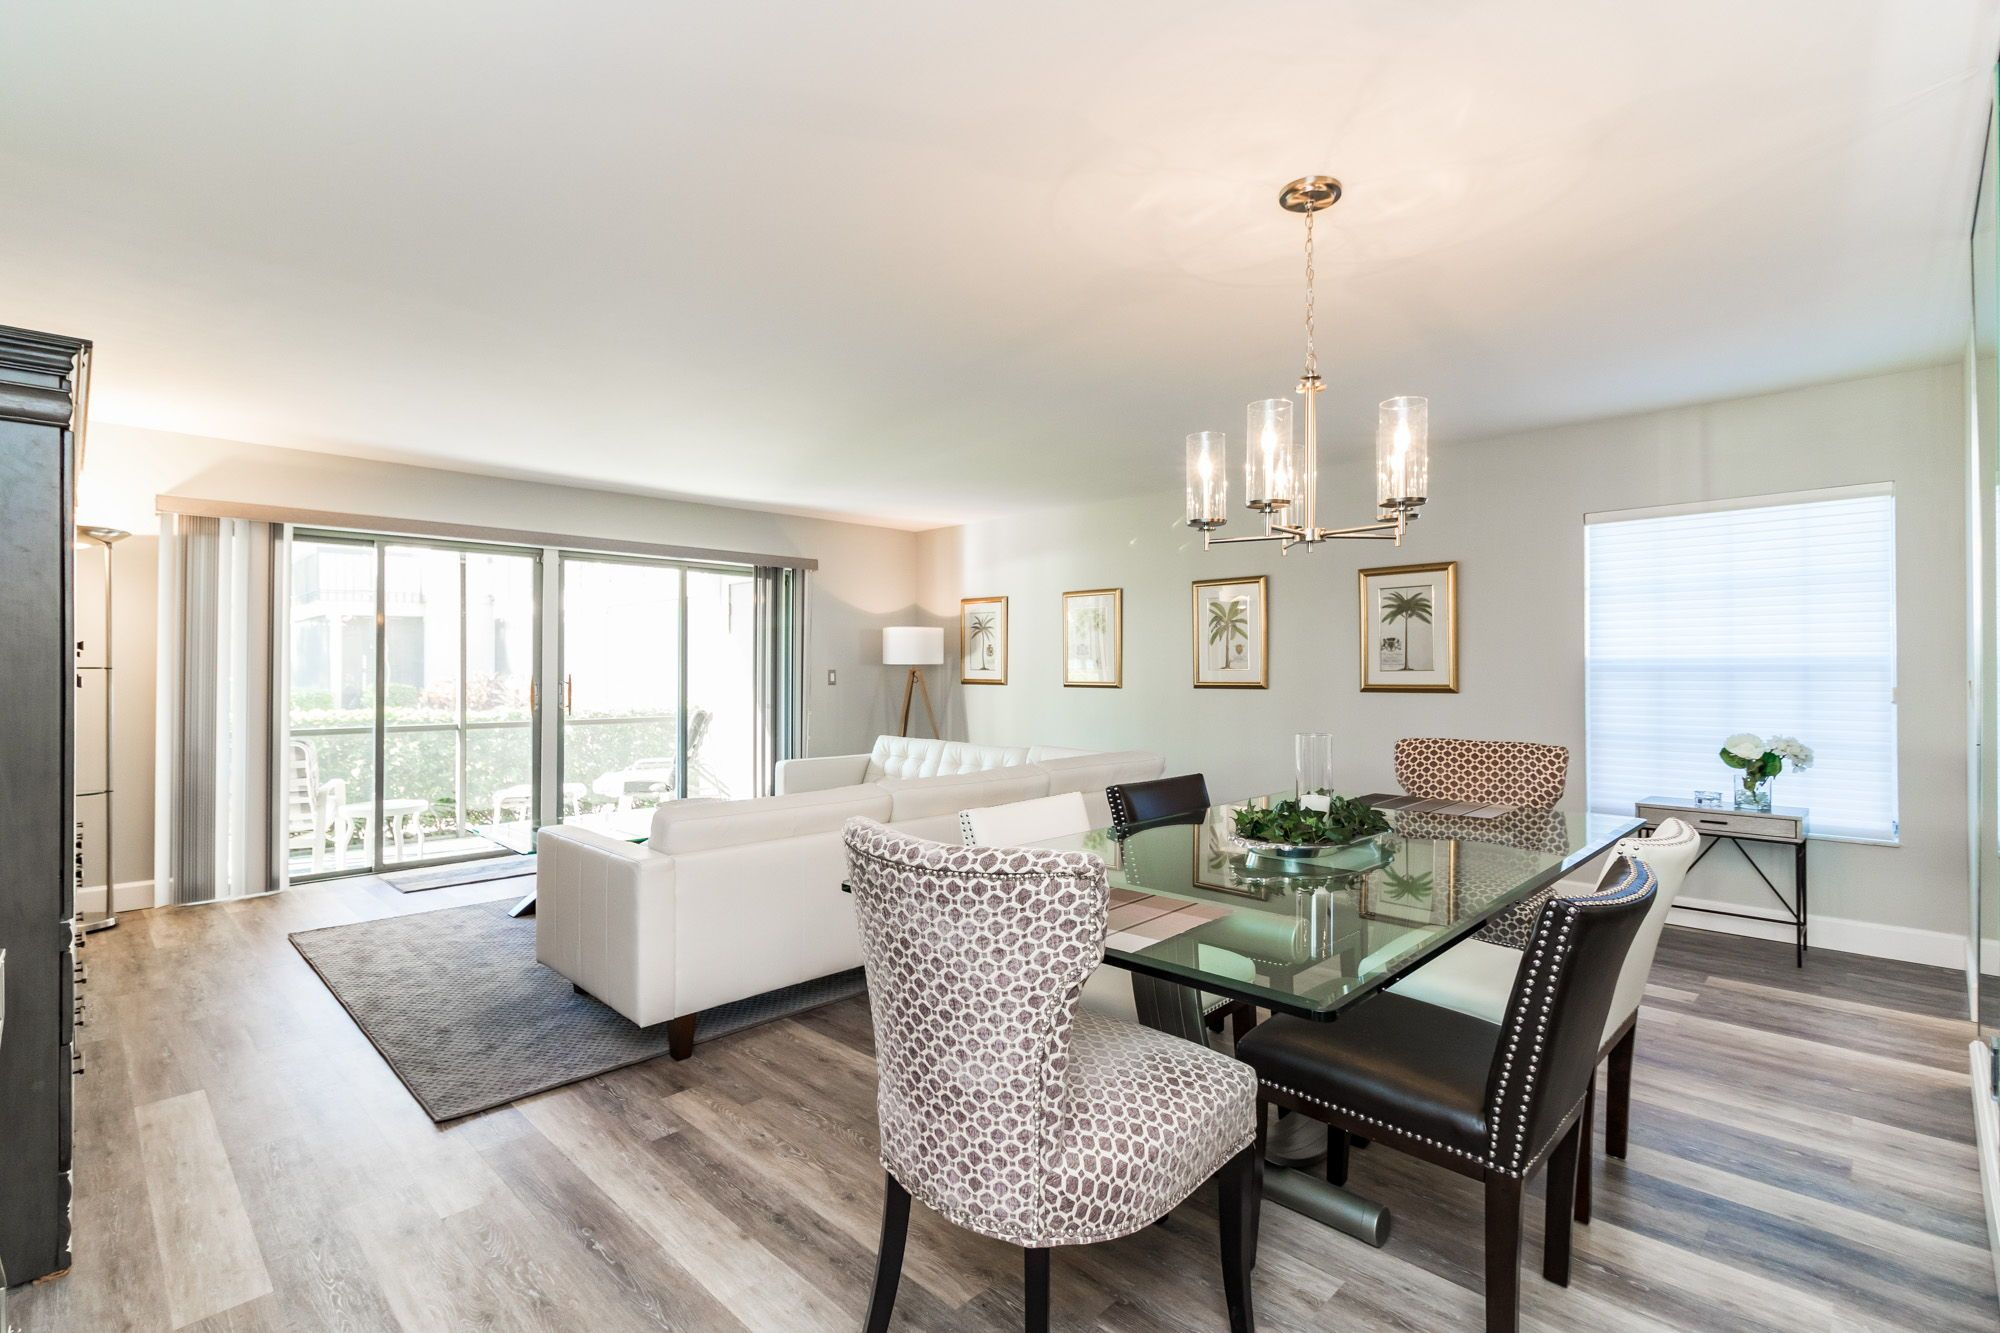 The dining room is part of the living room and has a wonderful views. The spacious area can ...